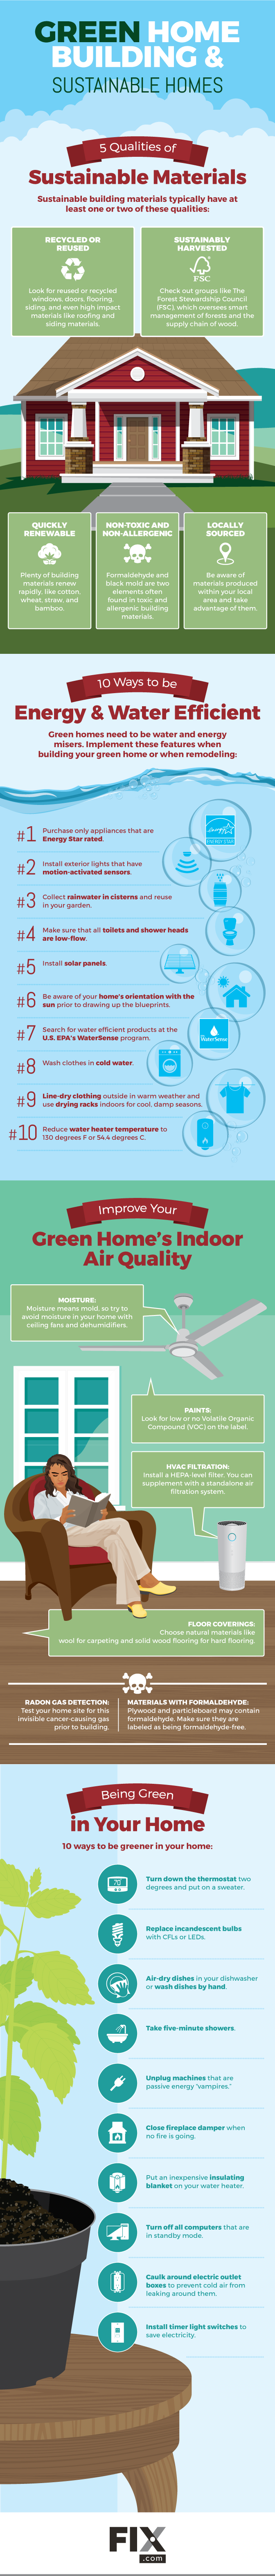 Green Home Building & Sustainable Homes #infographic